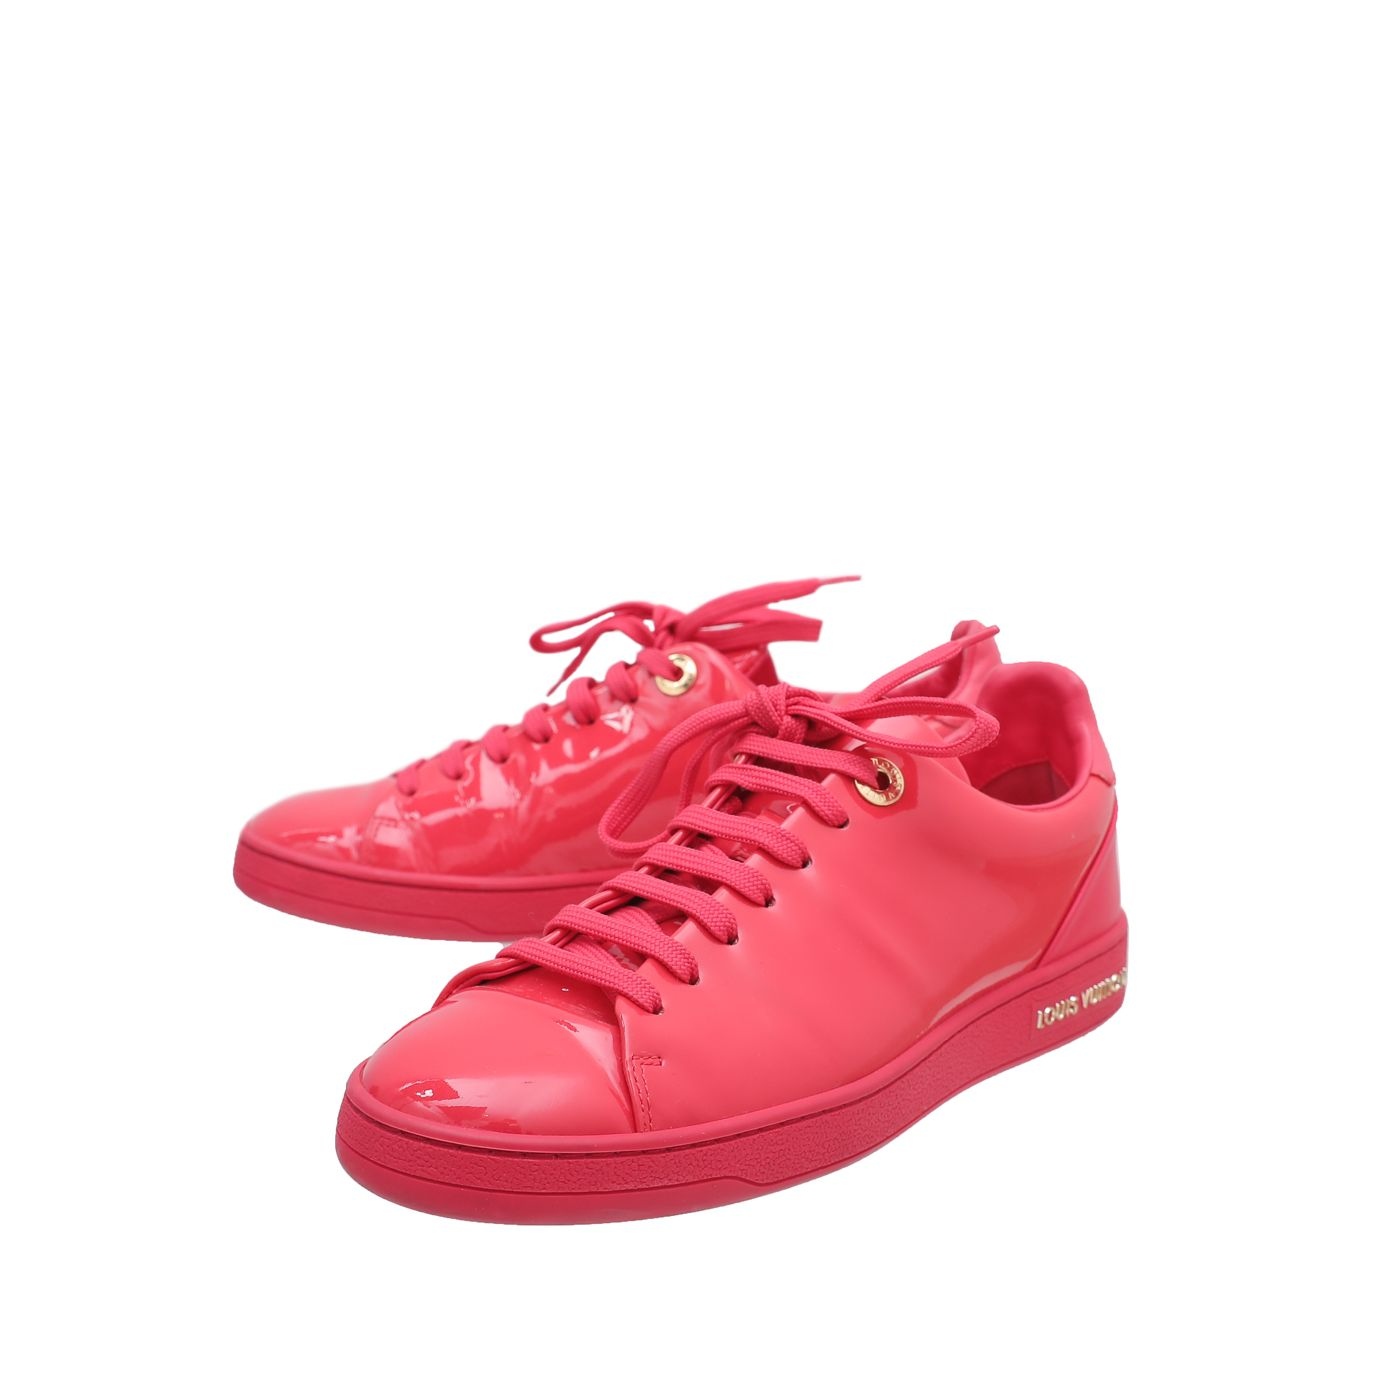 Louis Vuitton Neon Pink Frontrow Sneakers 35